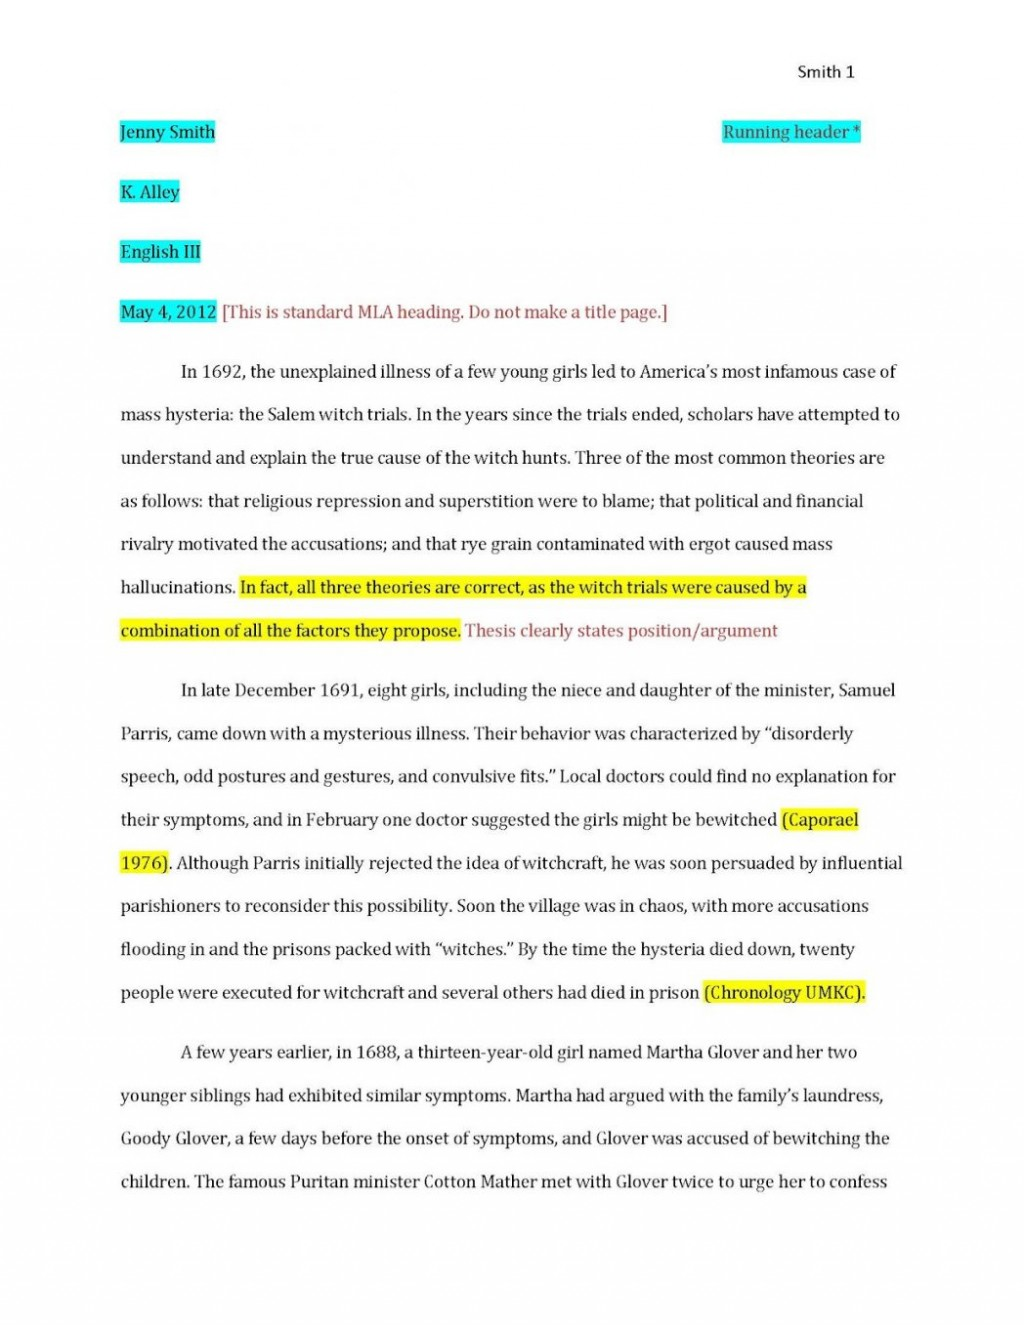 002 Mla Format Essay Generator Author Date References System Ready Set Automaticpaper P 1048x1357 Wondrous Funny Title Paper Software Download Large